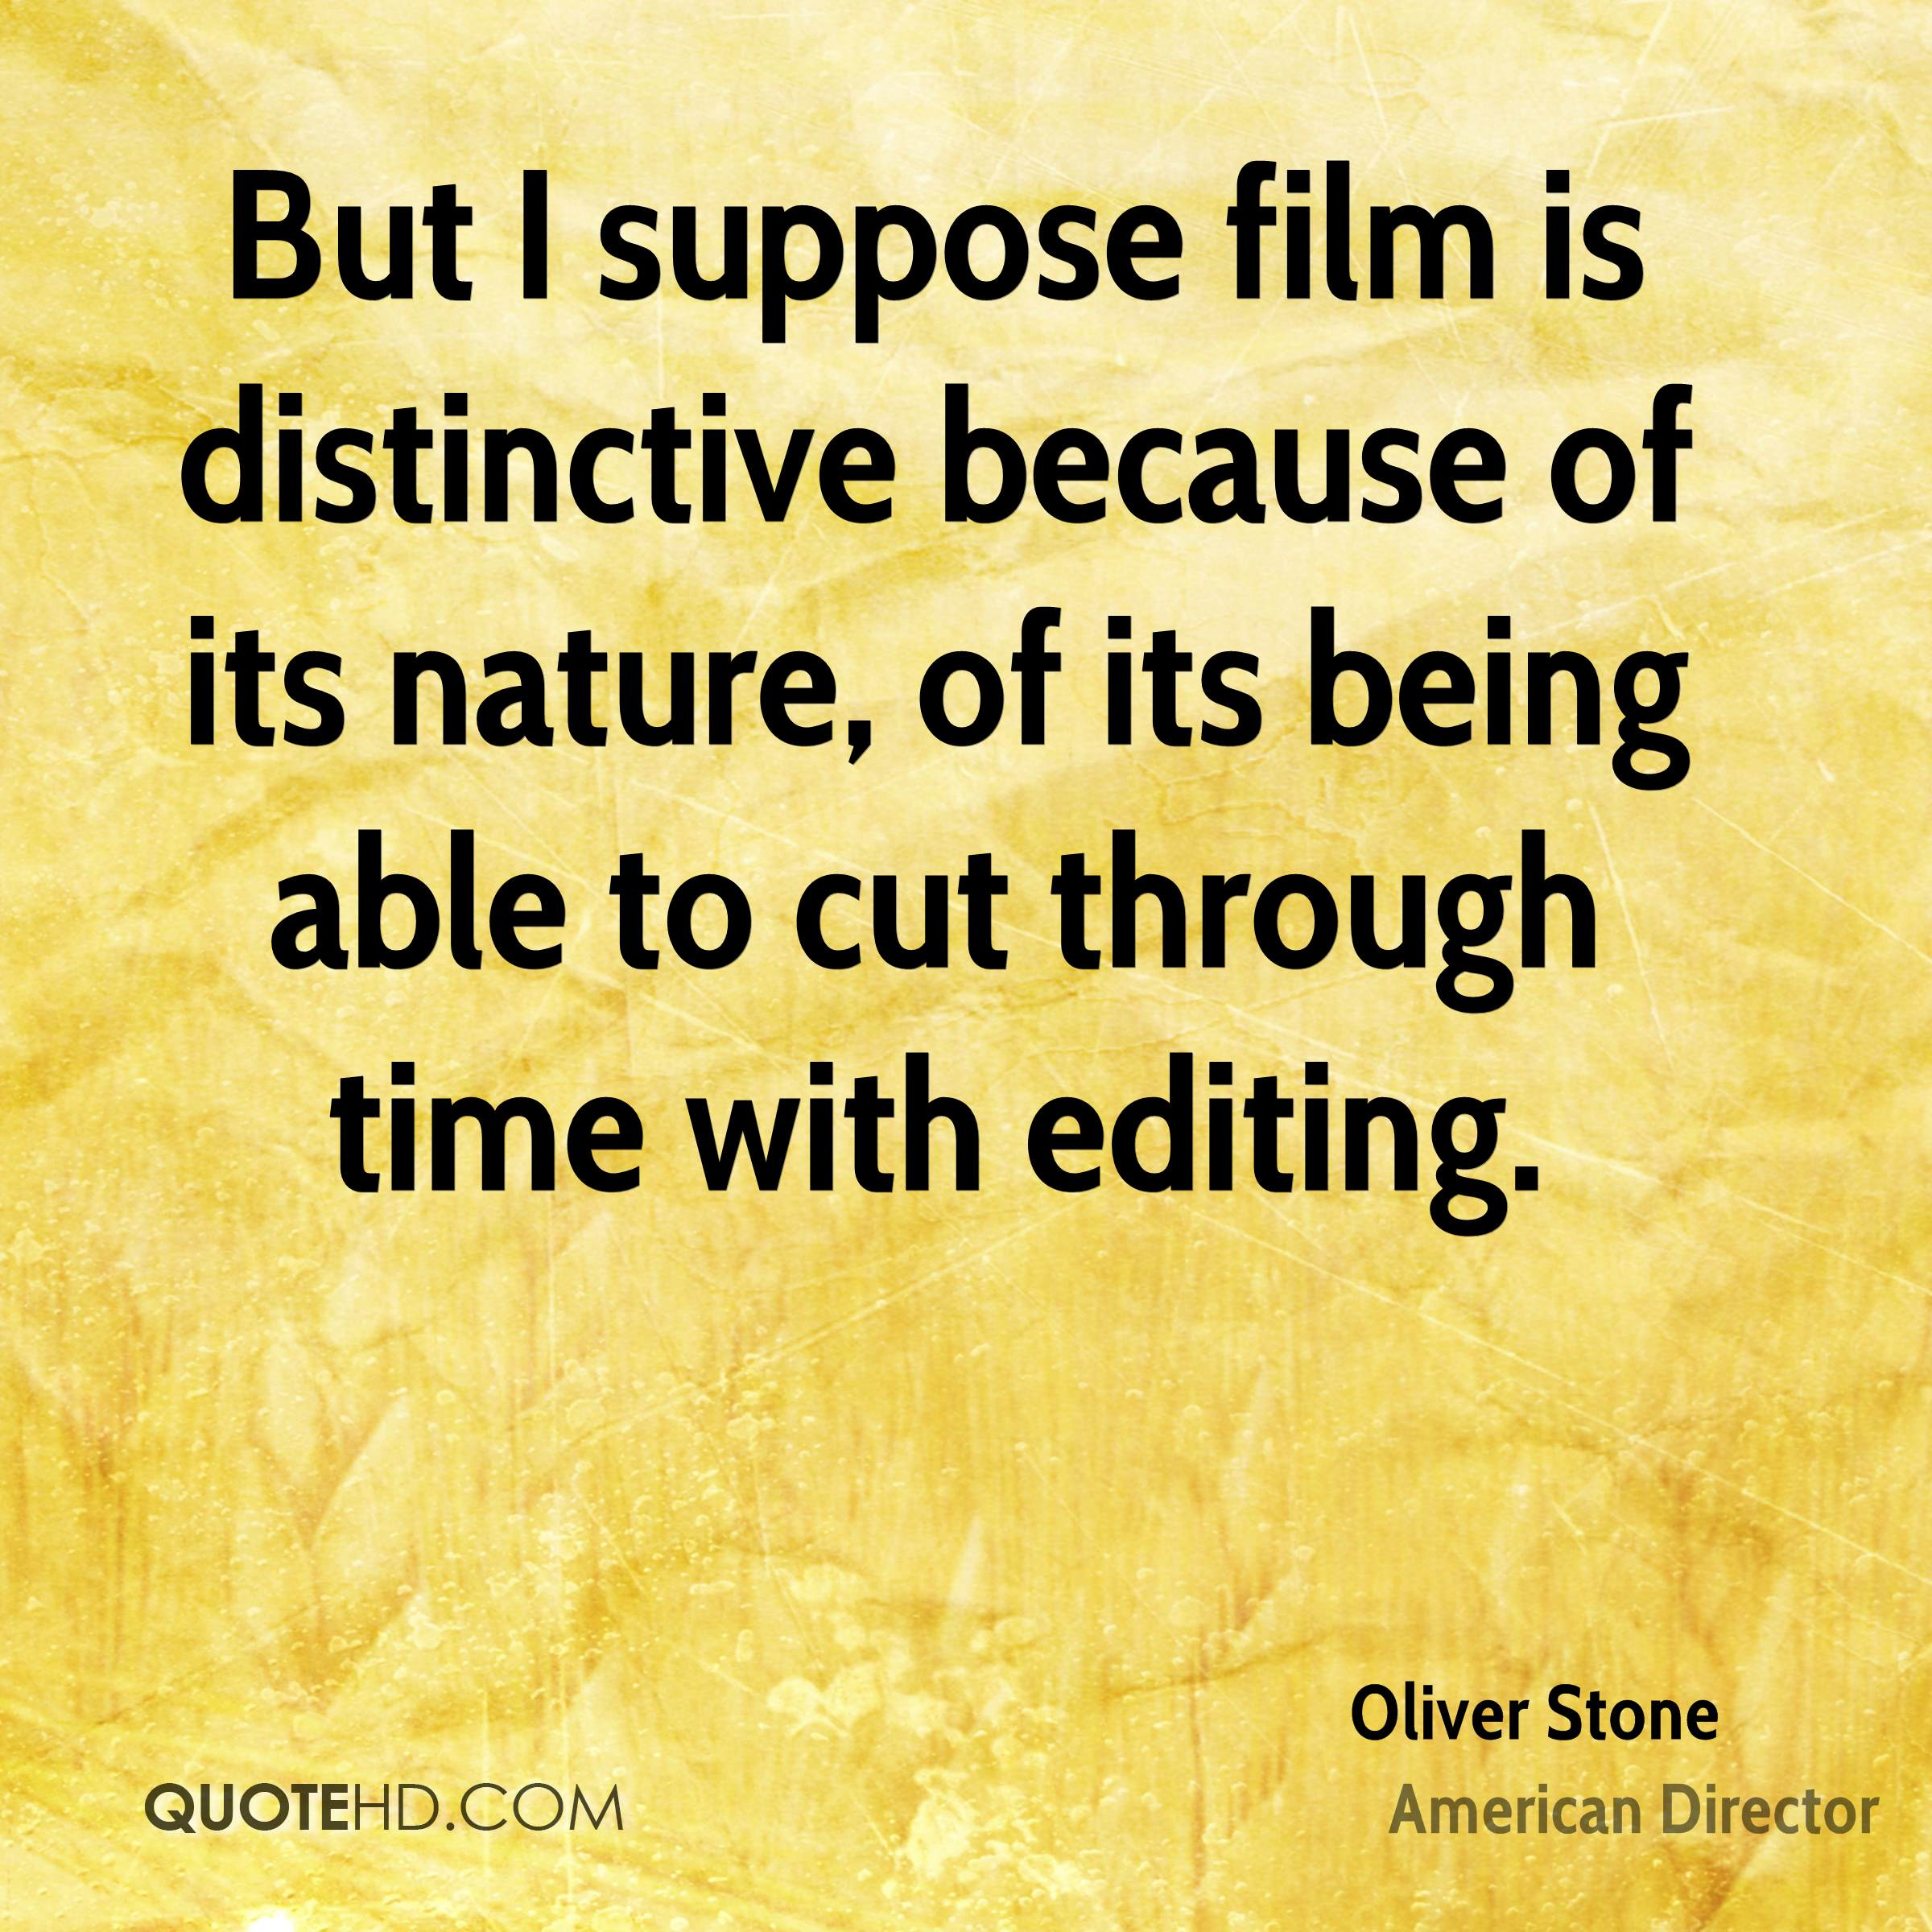 But I suppose film is distinctive because of its nature, of its being able to cut through time with editing.